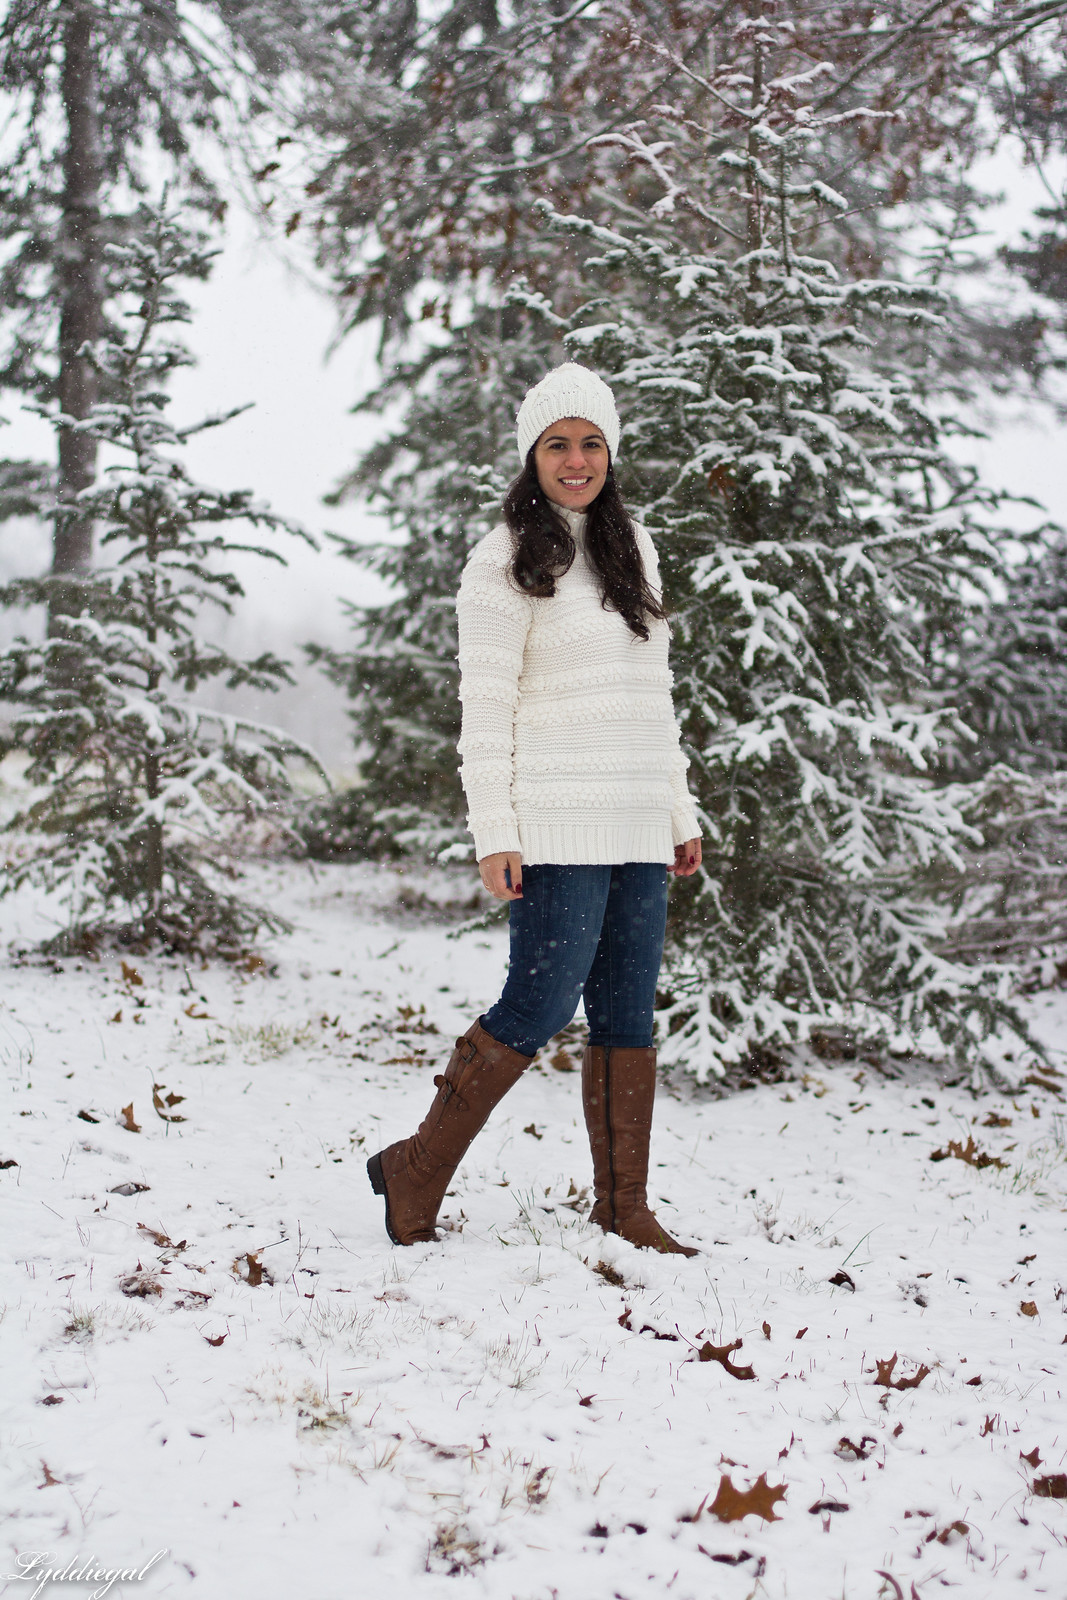 loft white sweater, brown leather boots, pom pom hat, tree hunt outfit-14.jpg